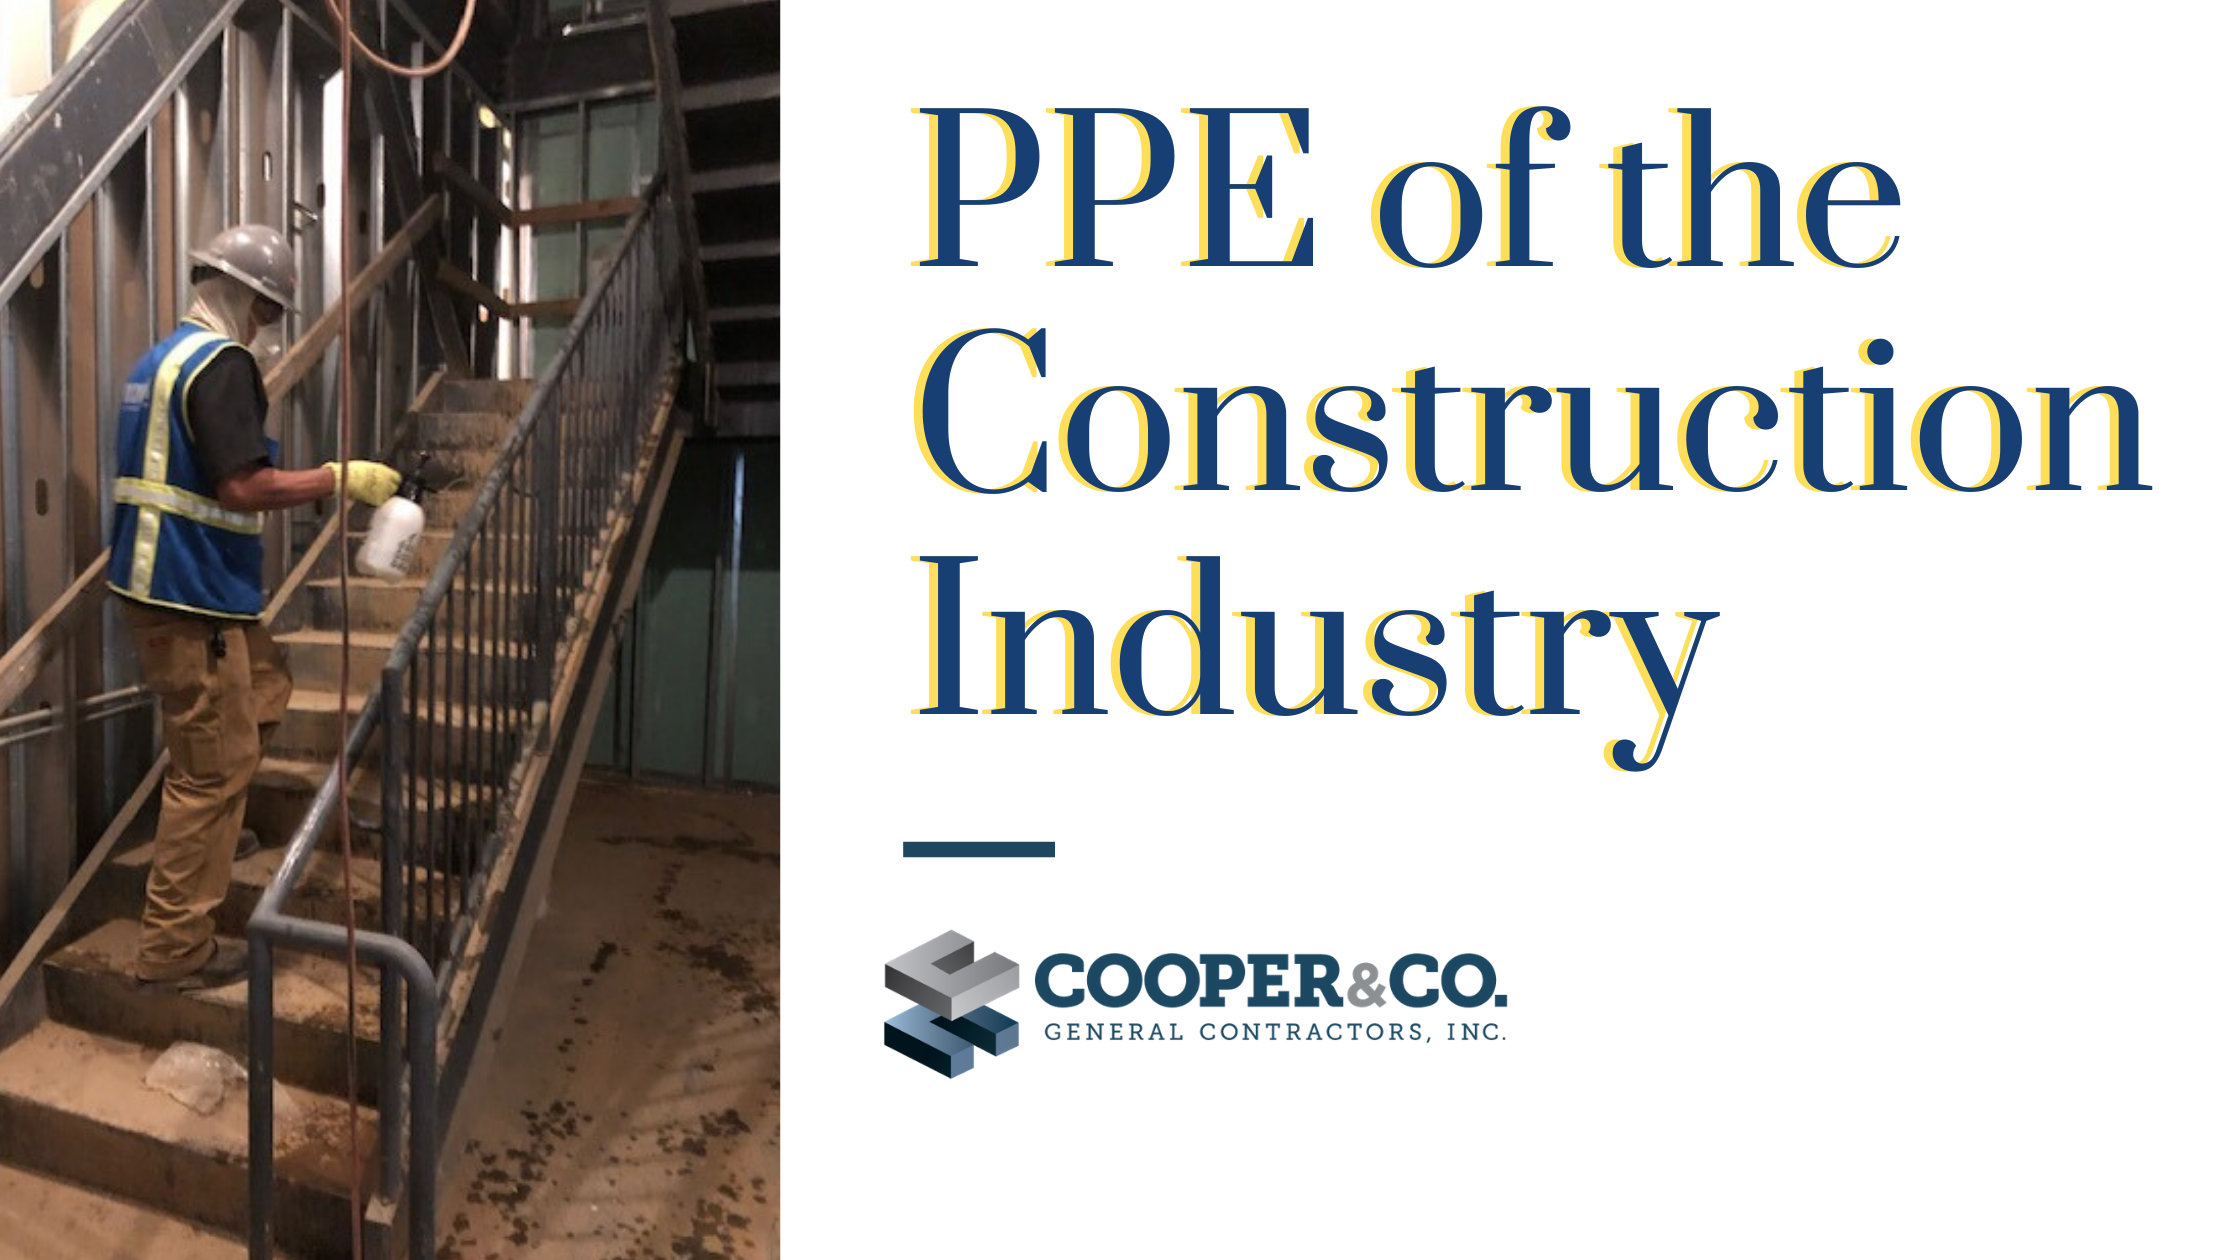 Cooper & Company   PPE of the Construction World